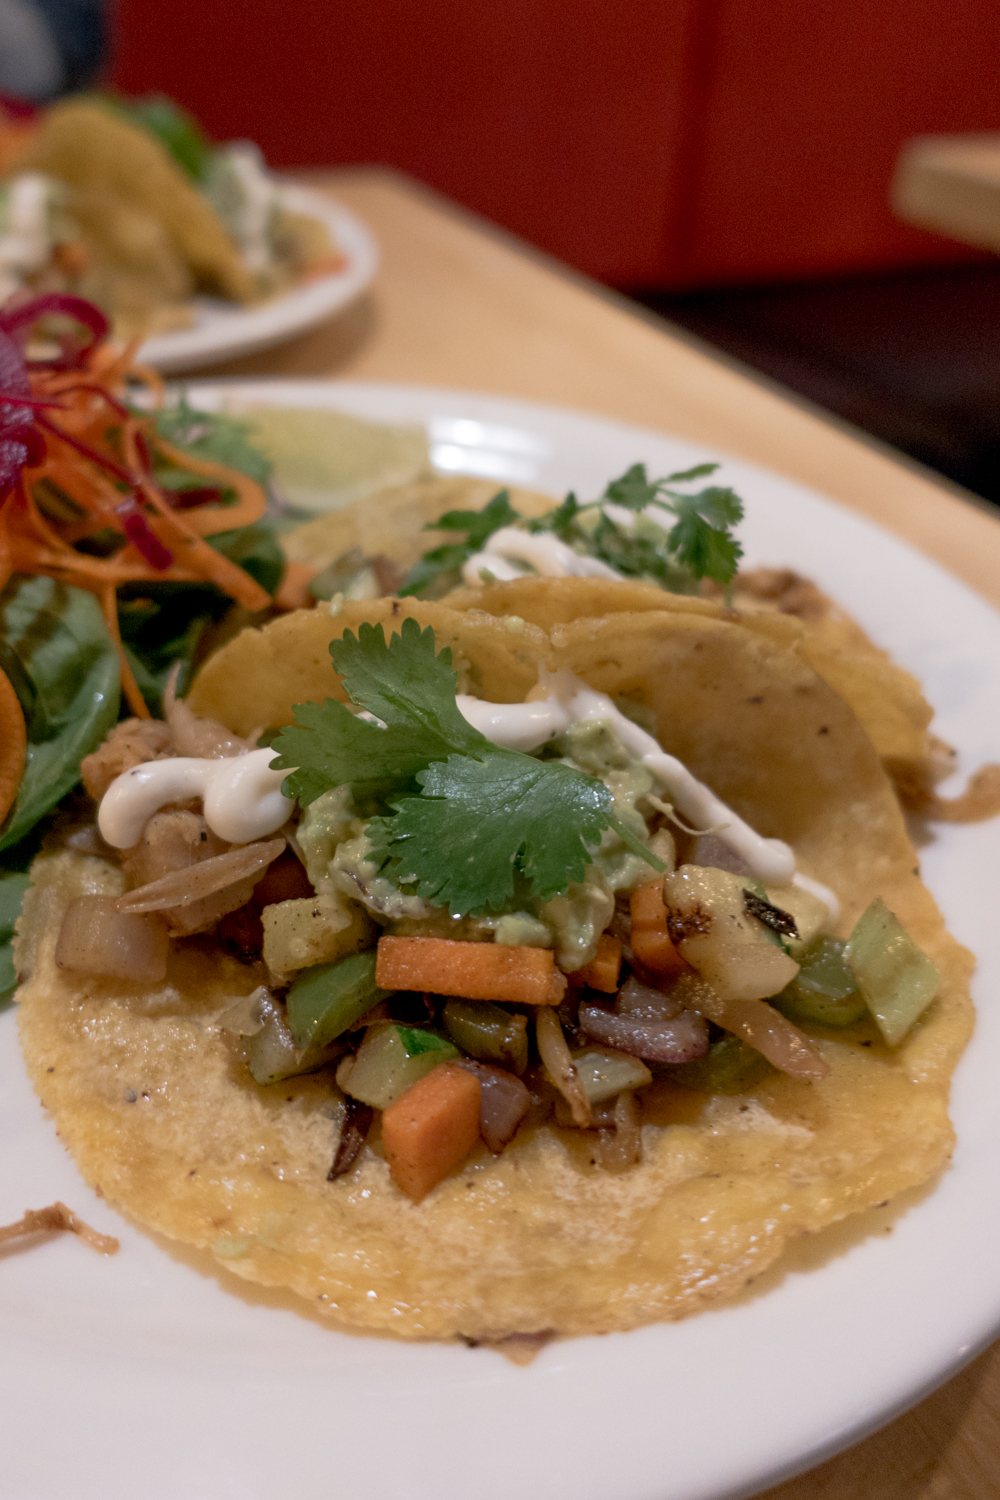 Vegan Jackfruit Tacos from Sage's Cafe located in Salt Lake City, Utah. #vegan